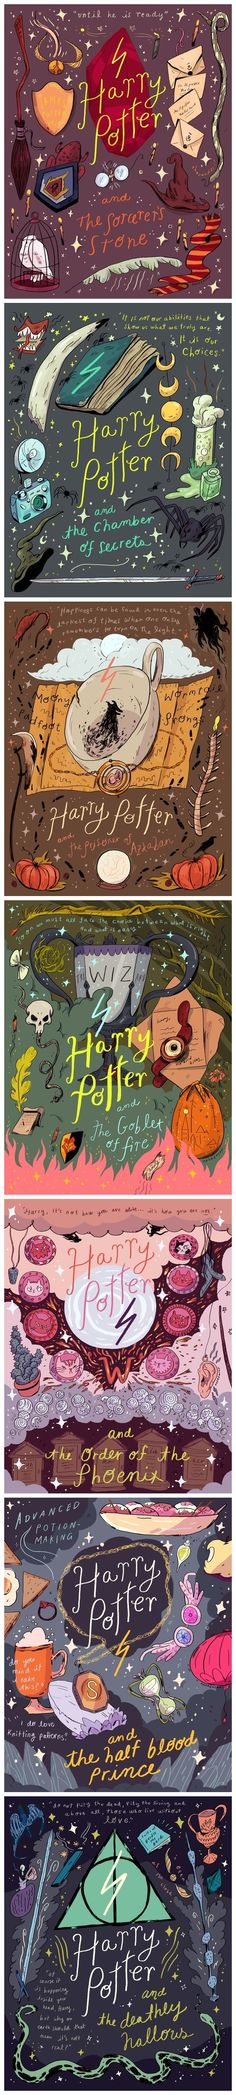 I think this is cool versions of each Harry Potter book.